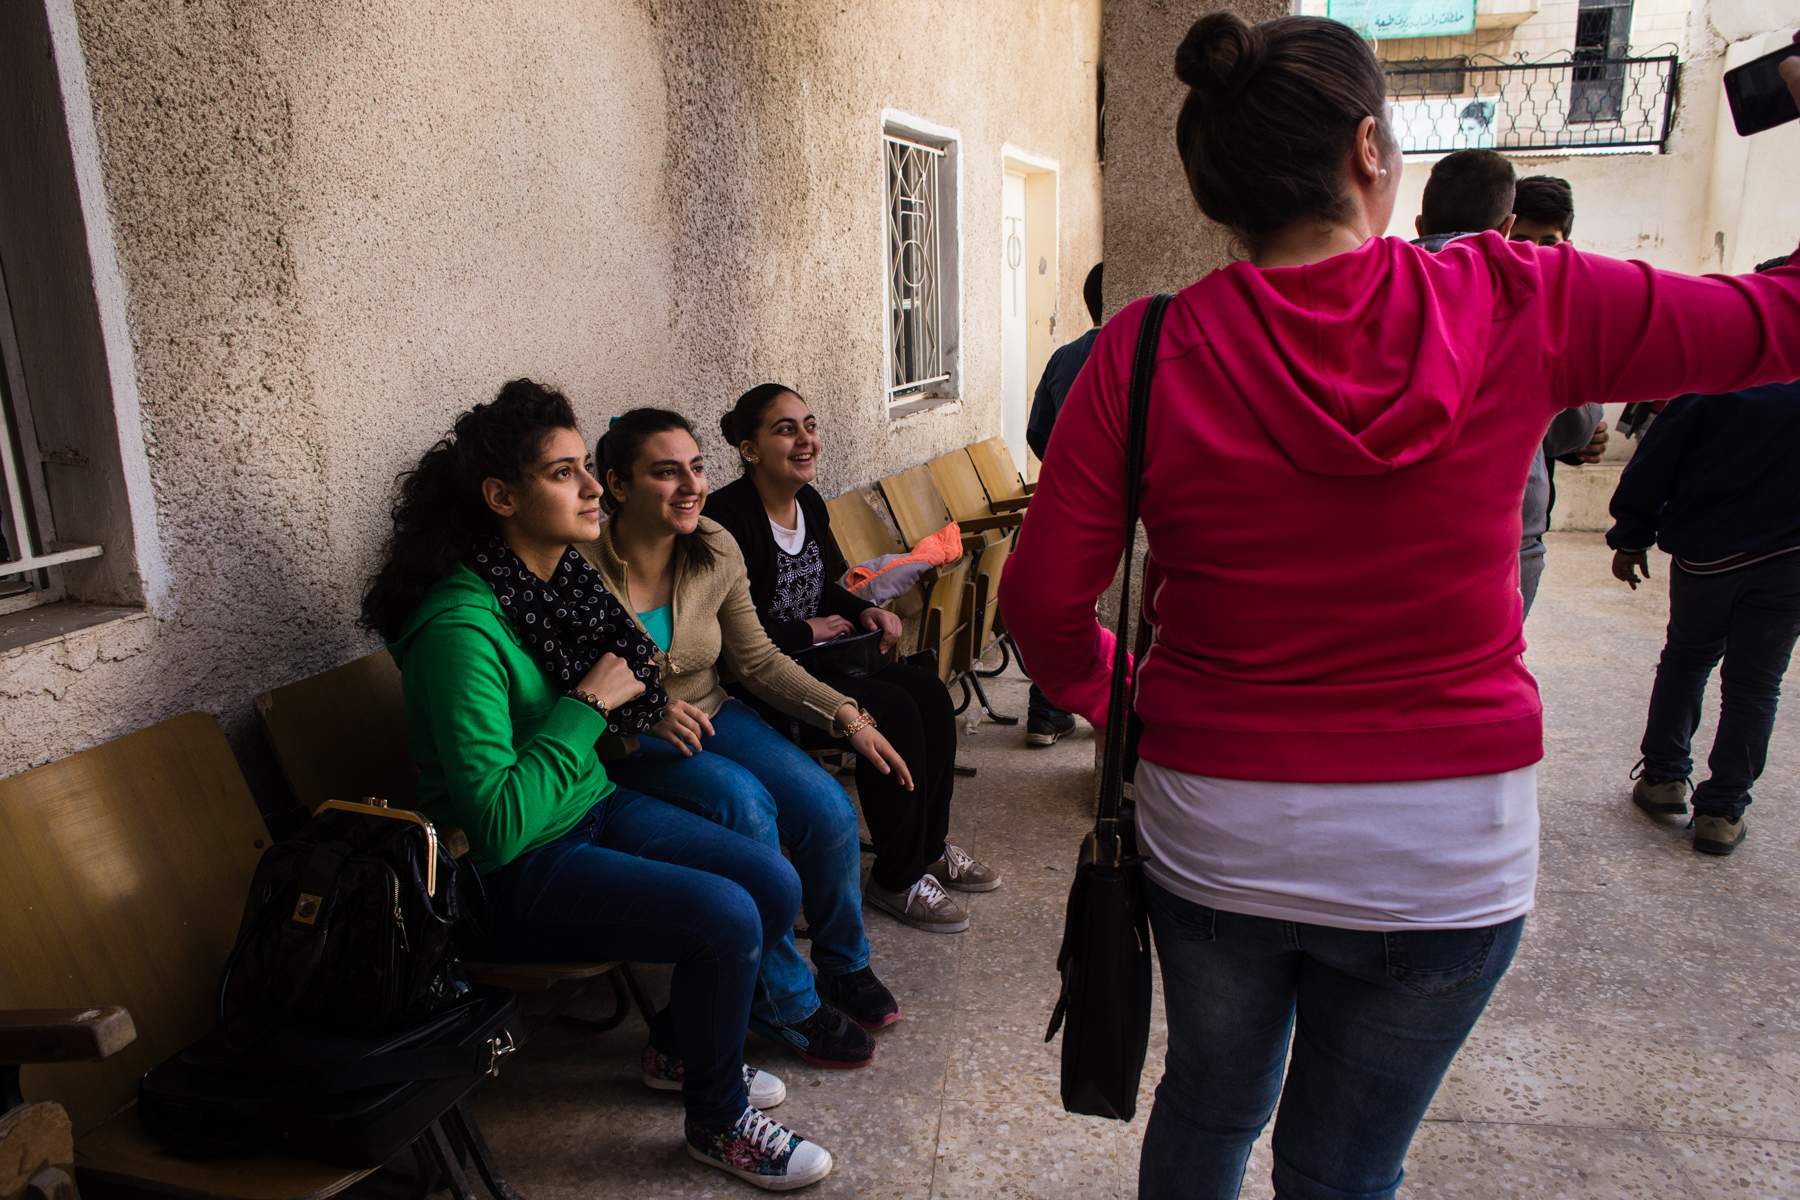 Jordanian Christian youth play and socialize outside an Orthodox Church in Mafraq, Jordan, on Nov. 4, 2016. About four months ago, the church started an educational program for kids, and quickly took in young Syrian refugees - whether Christian or Muslim - to make sure the kids are getting a good basic education, even if they aren't able to attend school.